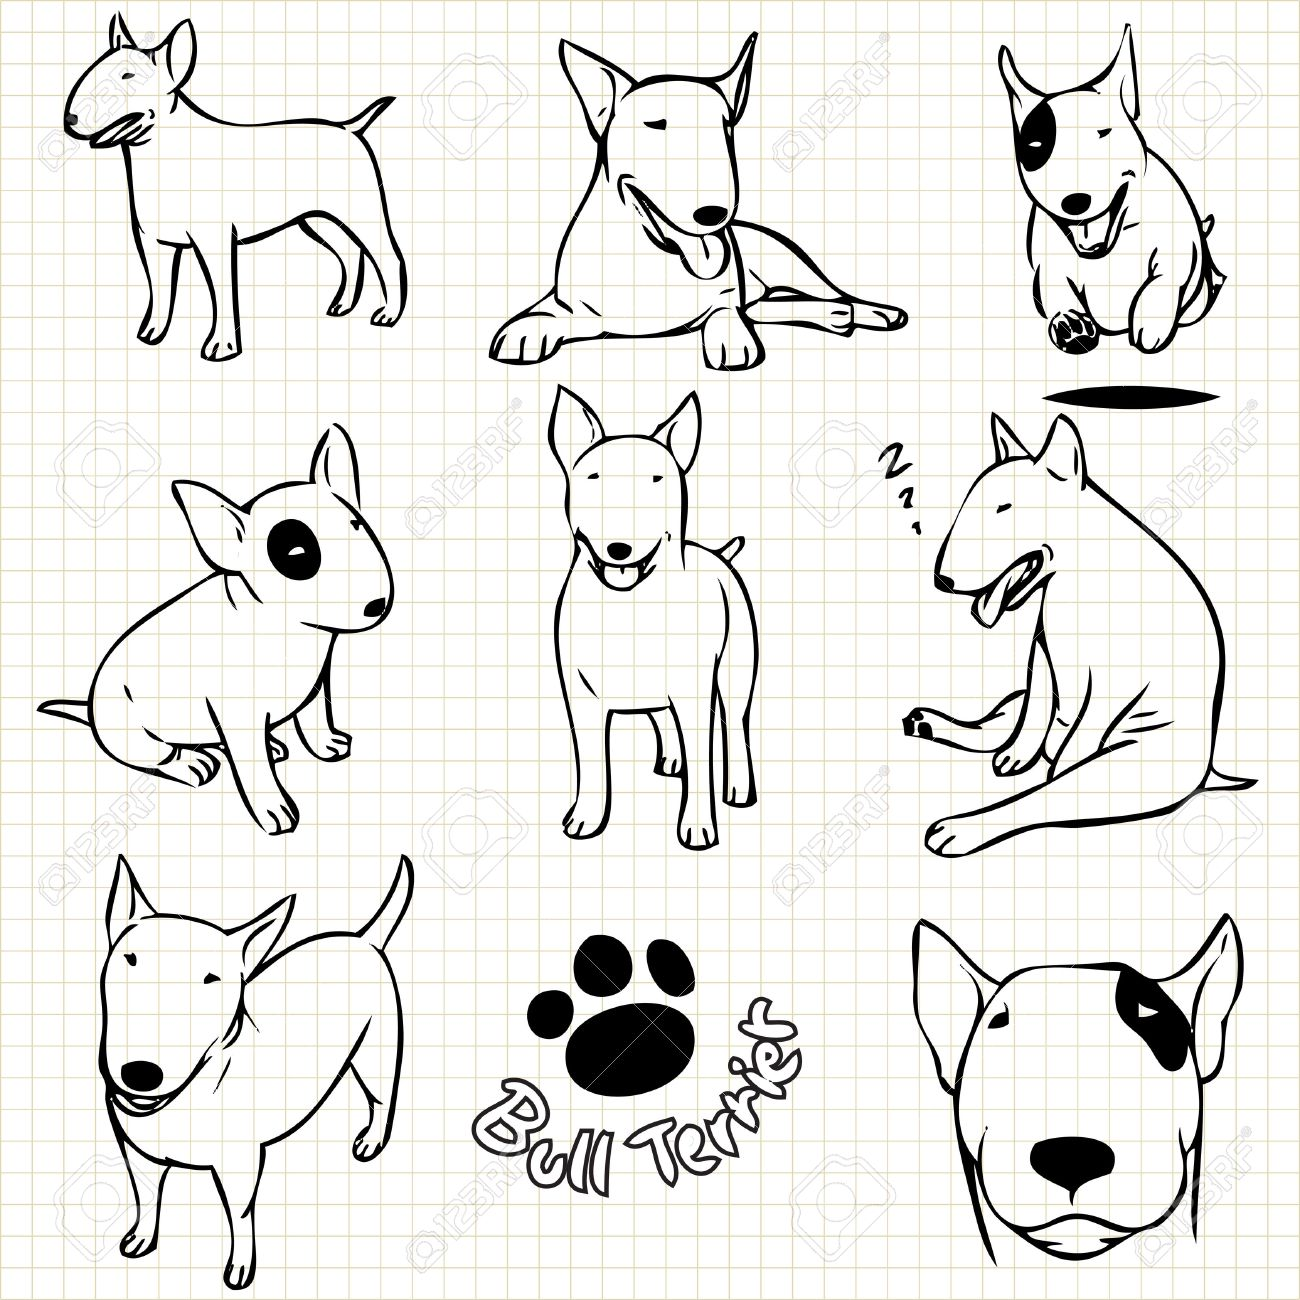 Line drawing of Bull terrier dog set on grid paper use for elements design. - 48205025